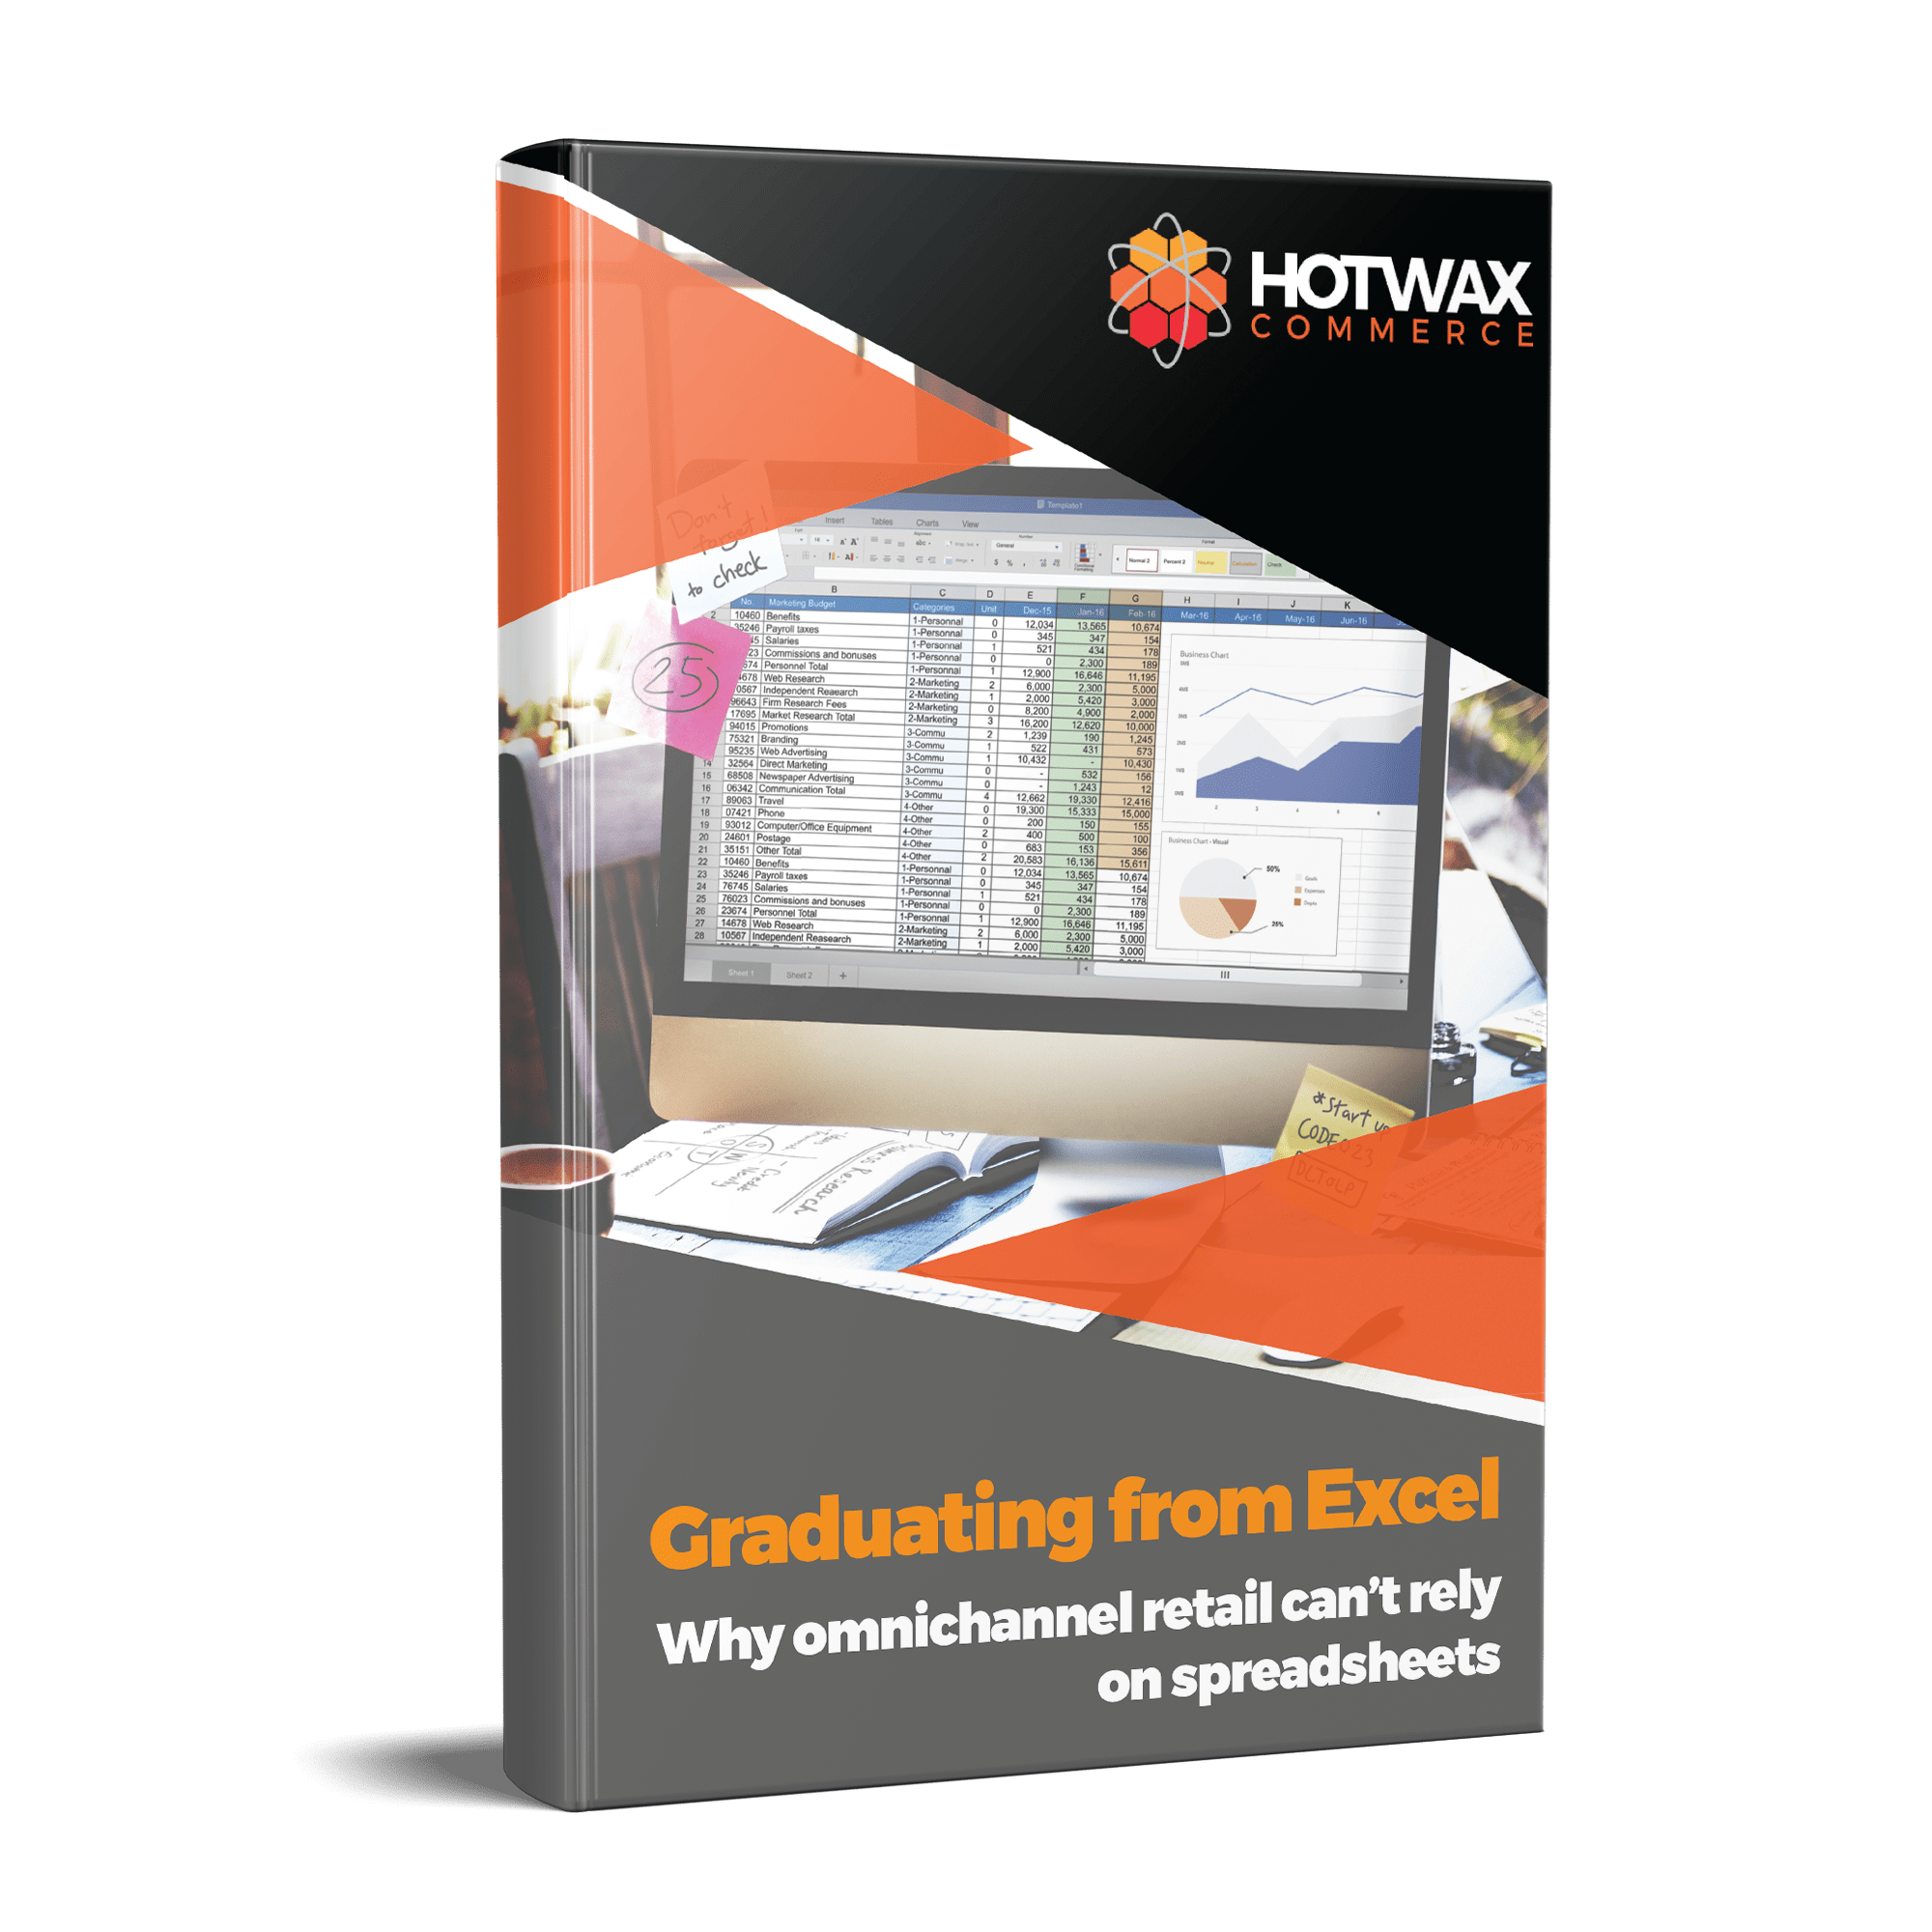 Graduating from Excel eBook from HotWax Commerce